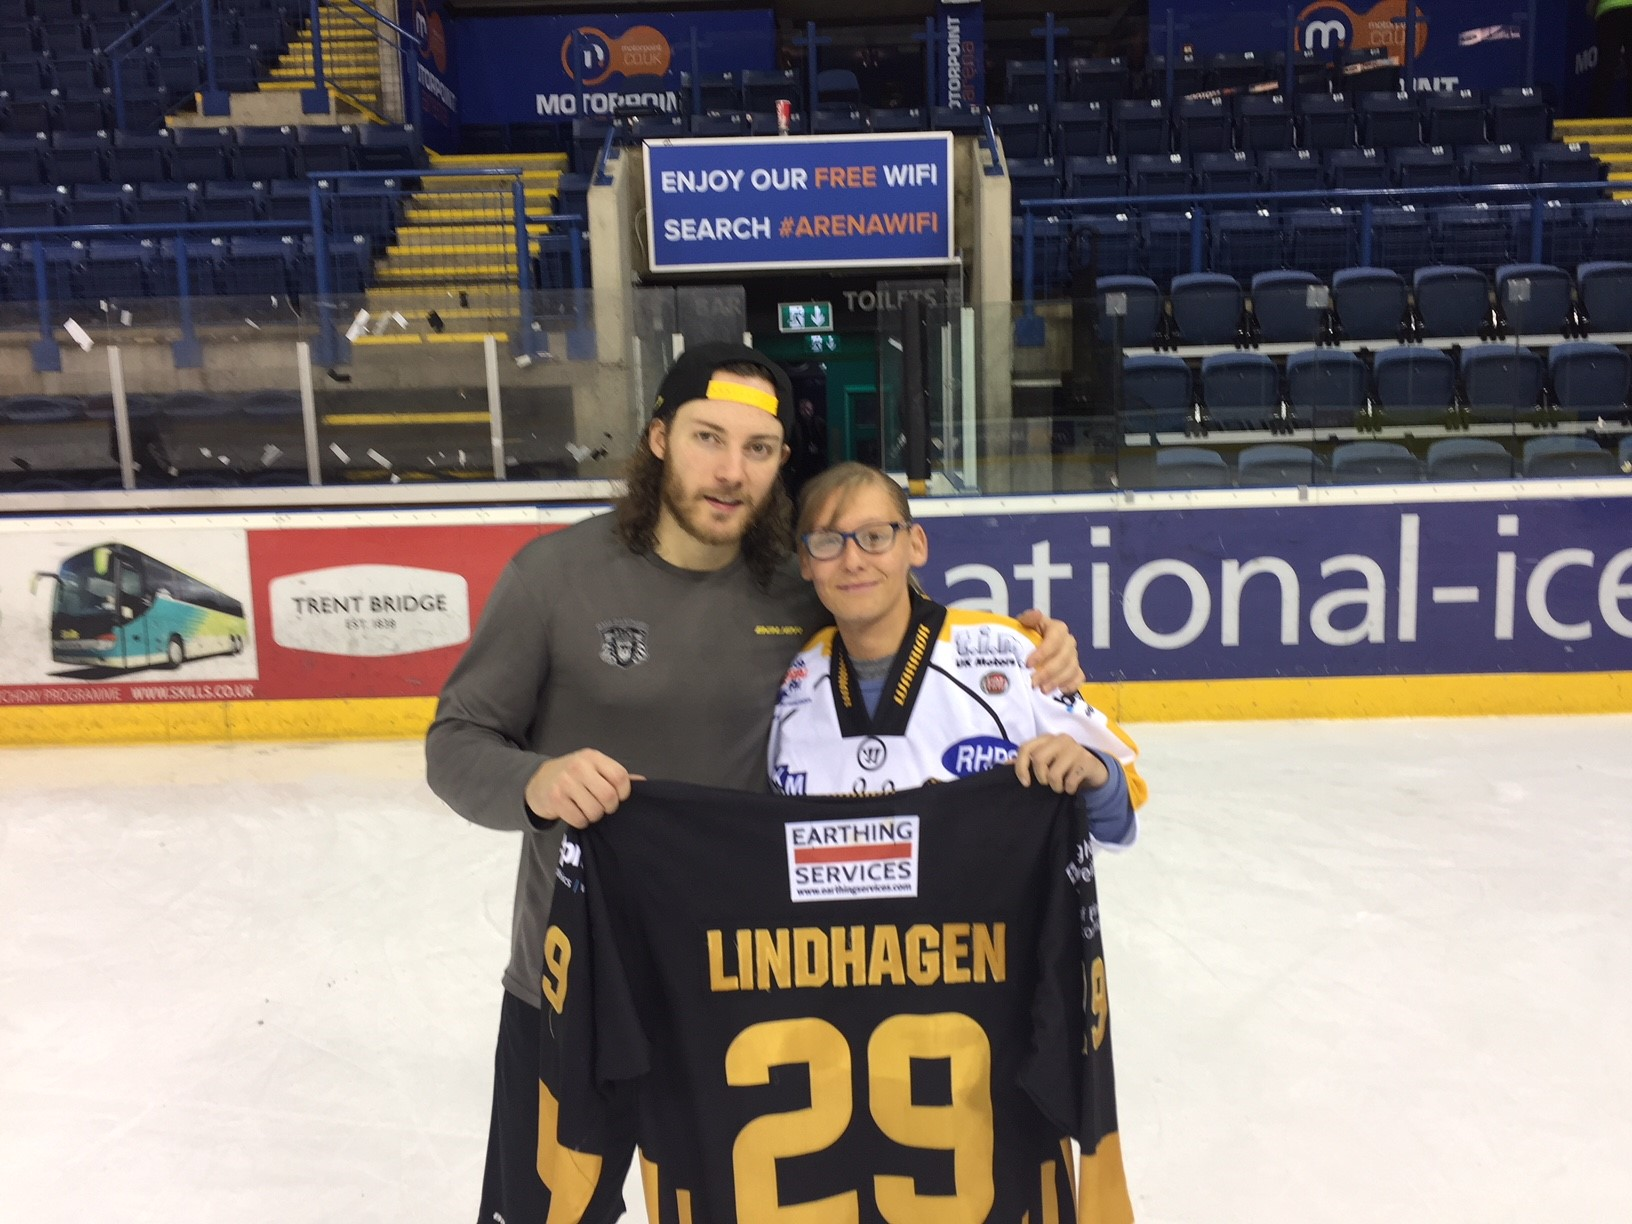 Lindhagen jersey goes to long time fan Top Image